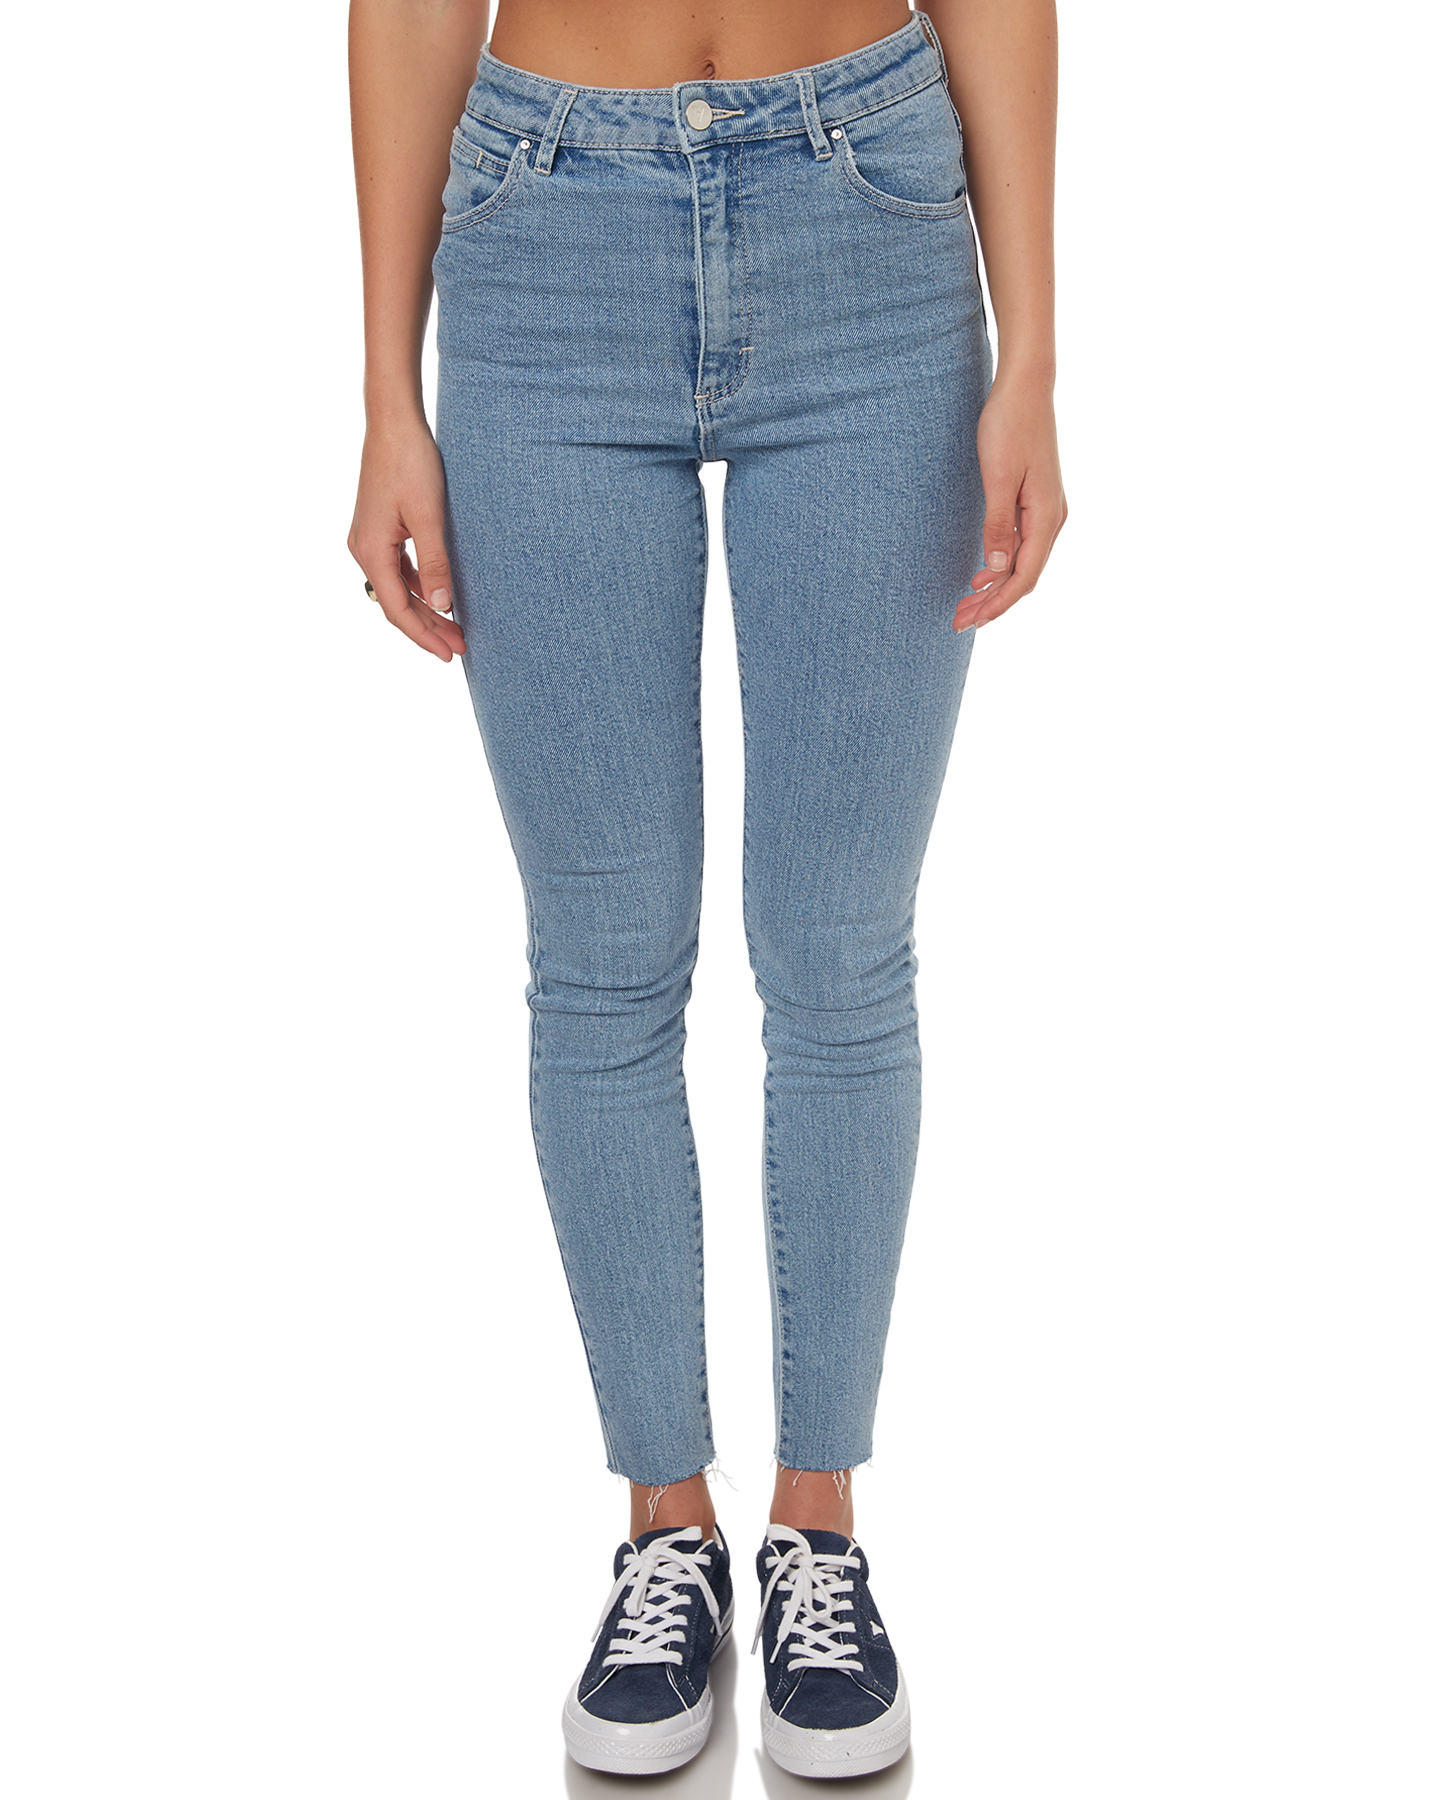 k Followers, Following, 1, Posts - See Instagram photos and videos from Abrand Jeans (@abrandjeans).